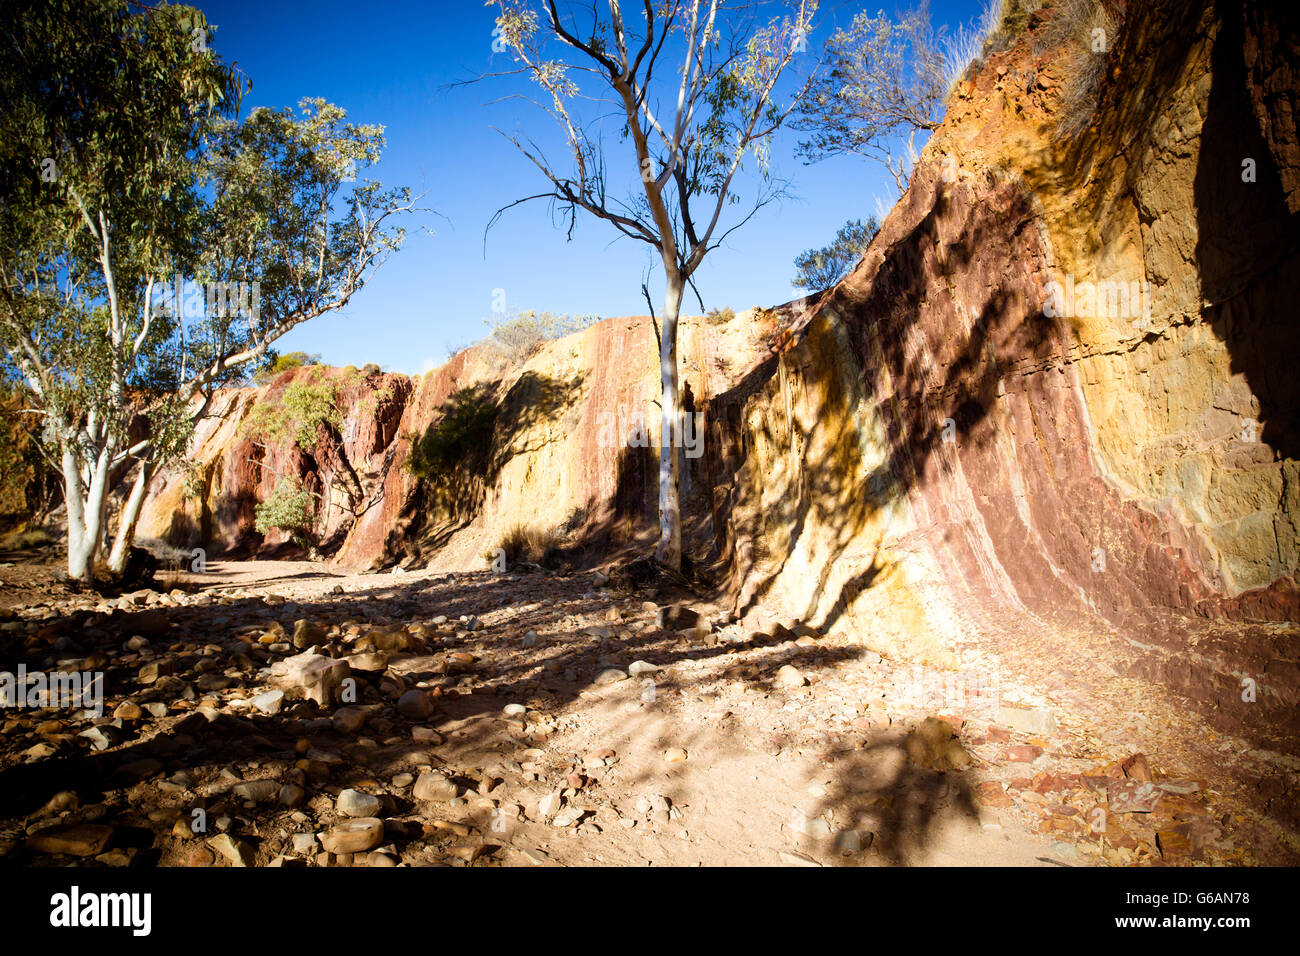 A sacred Aborginal site of Ochre Pits near Alice Springs in the Northern Territory, Australia - Stock Image